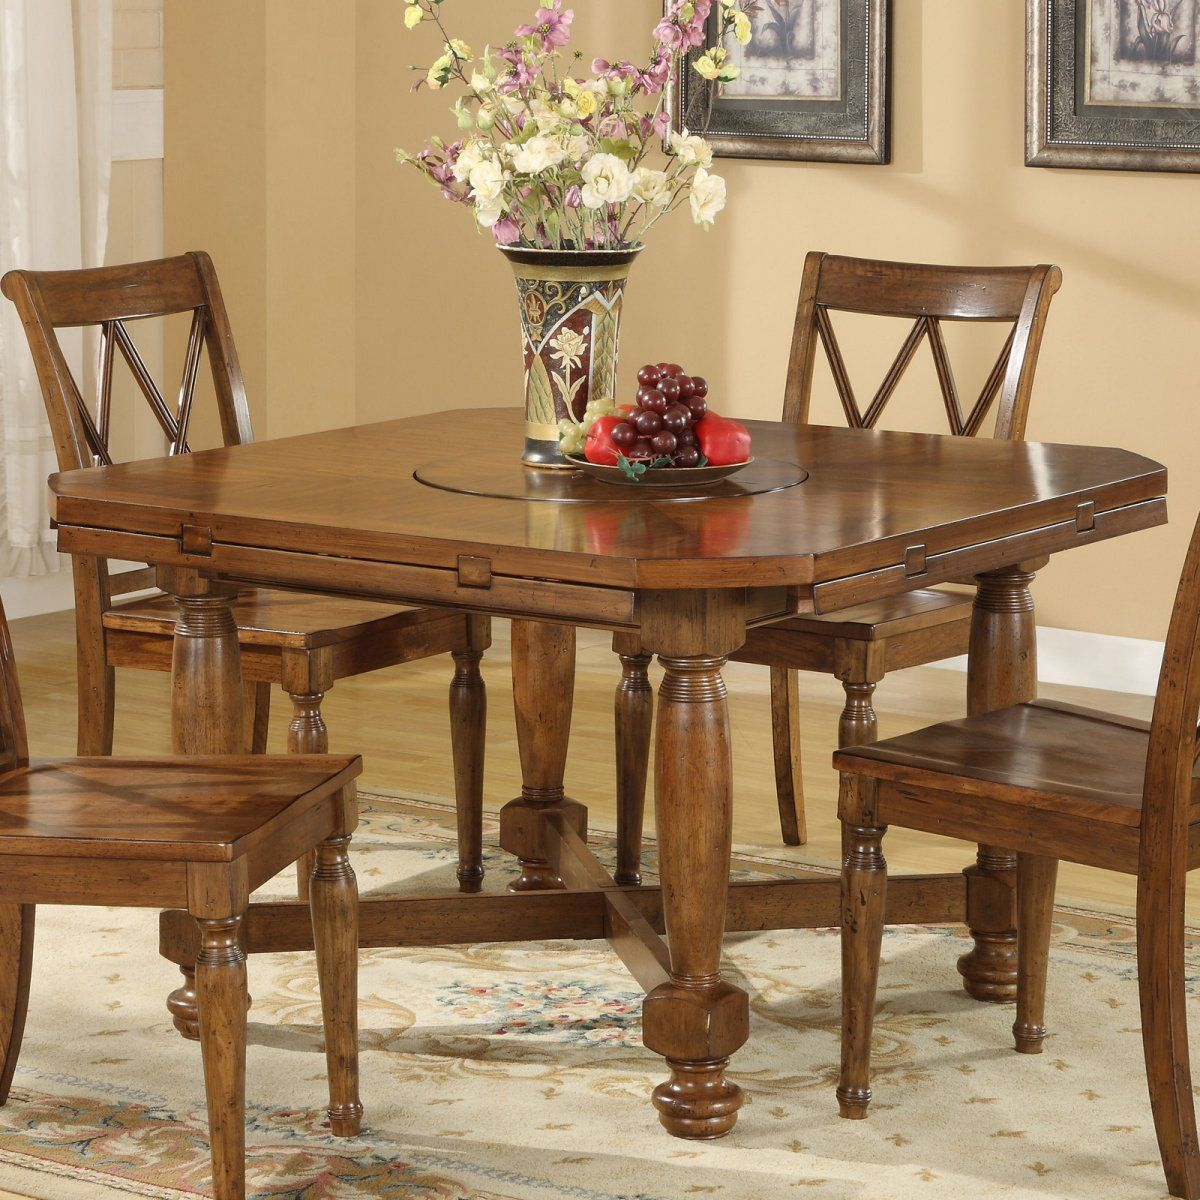 Home Decor Dining Table: *kitchen Table Riverside DelCastle Round/Square Convert-A